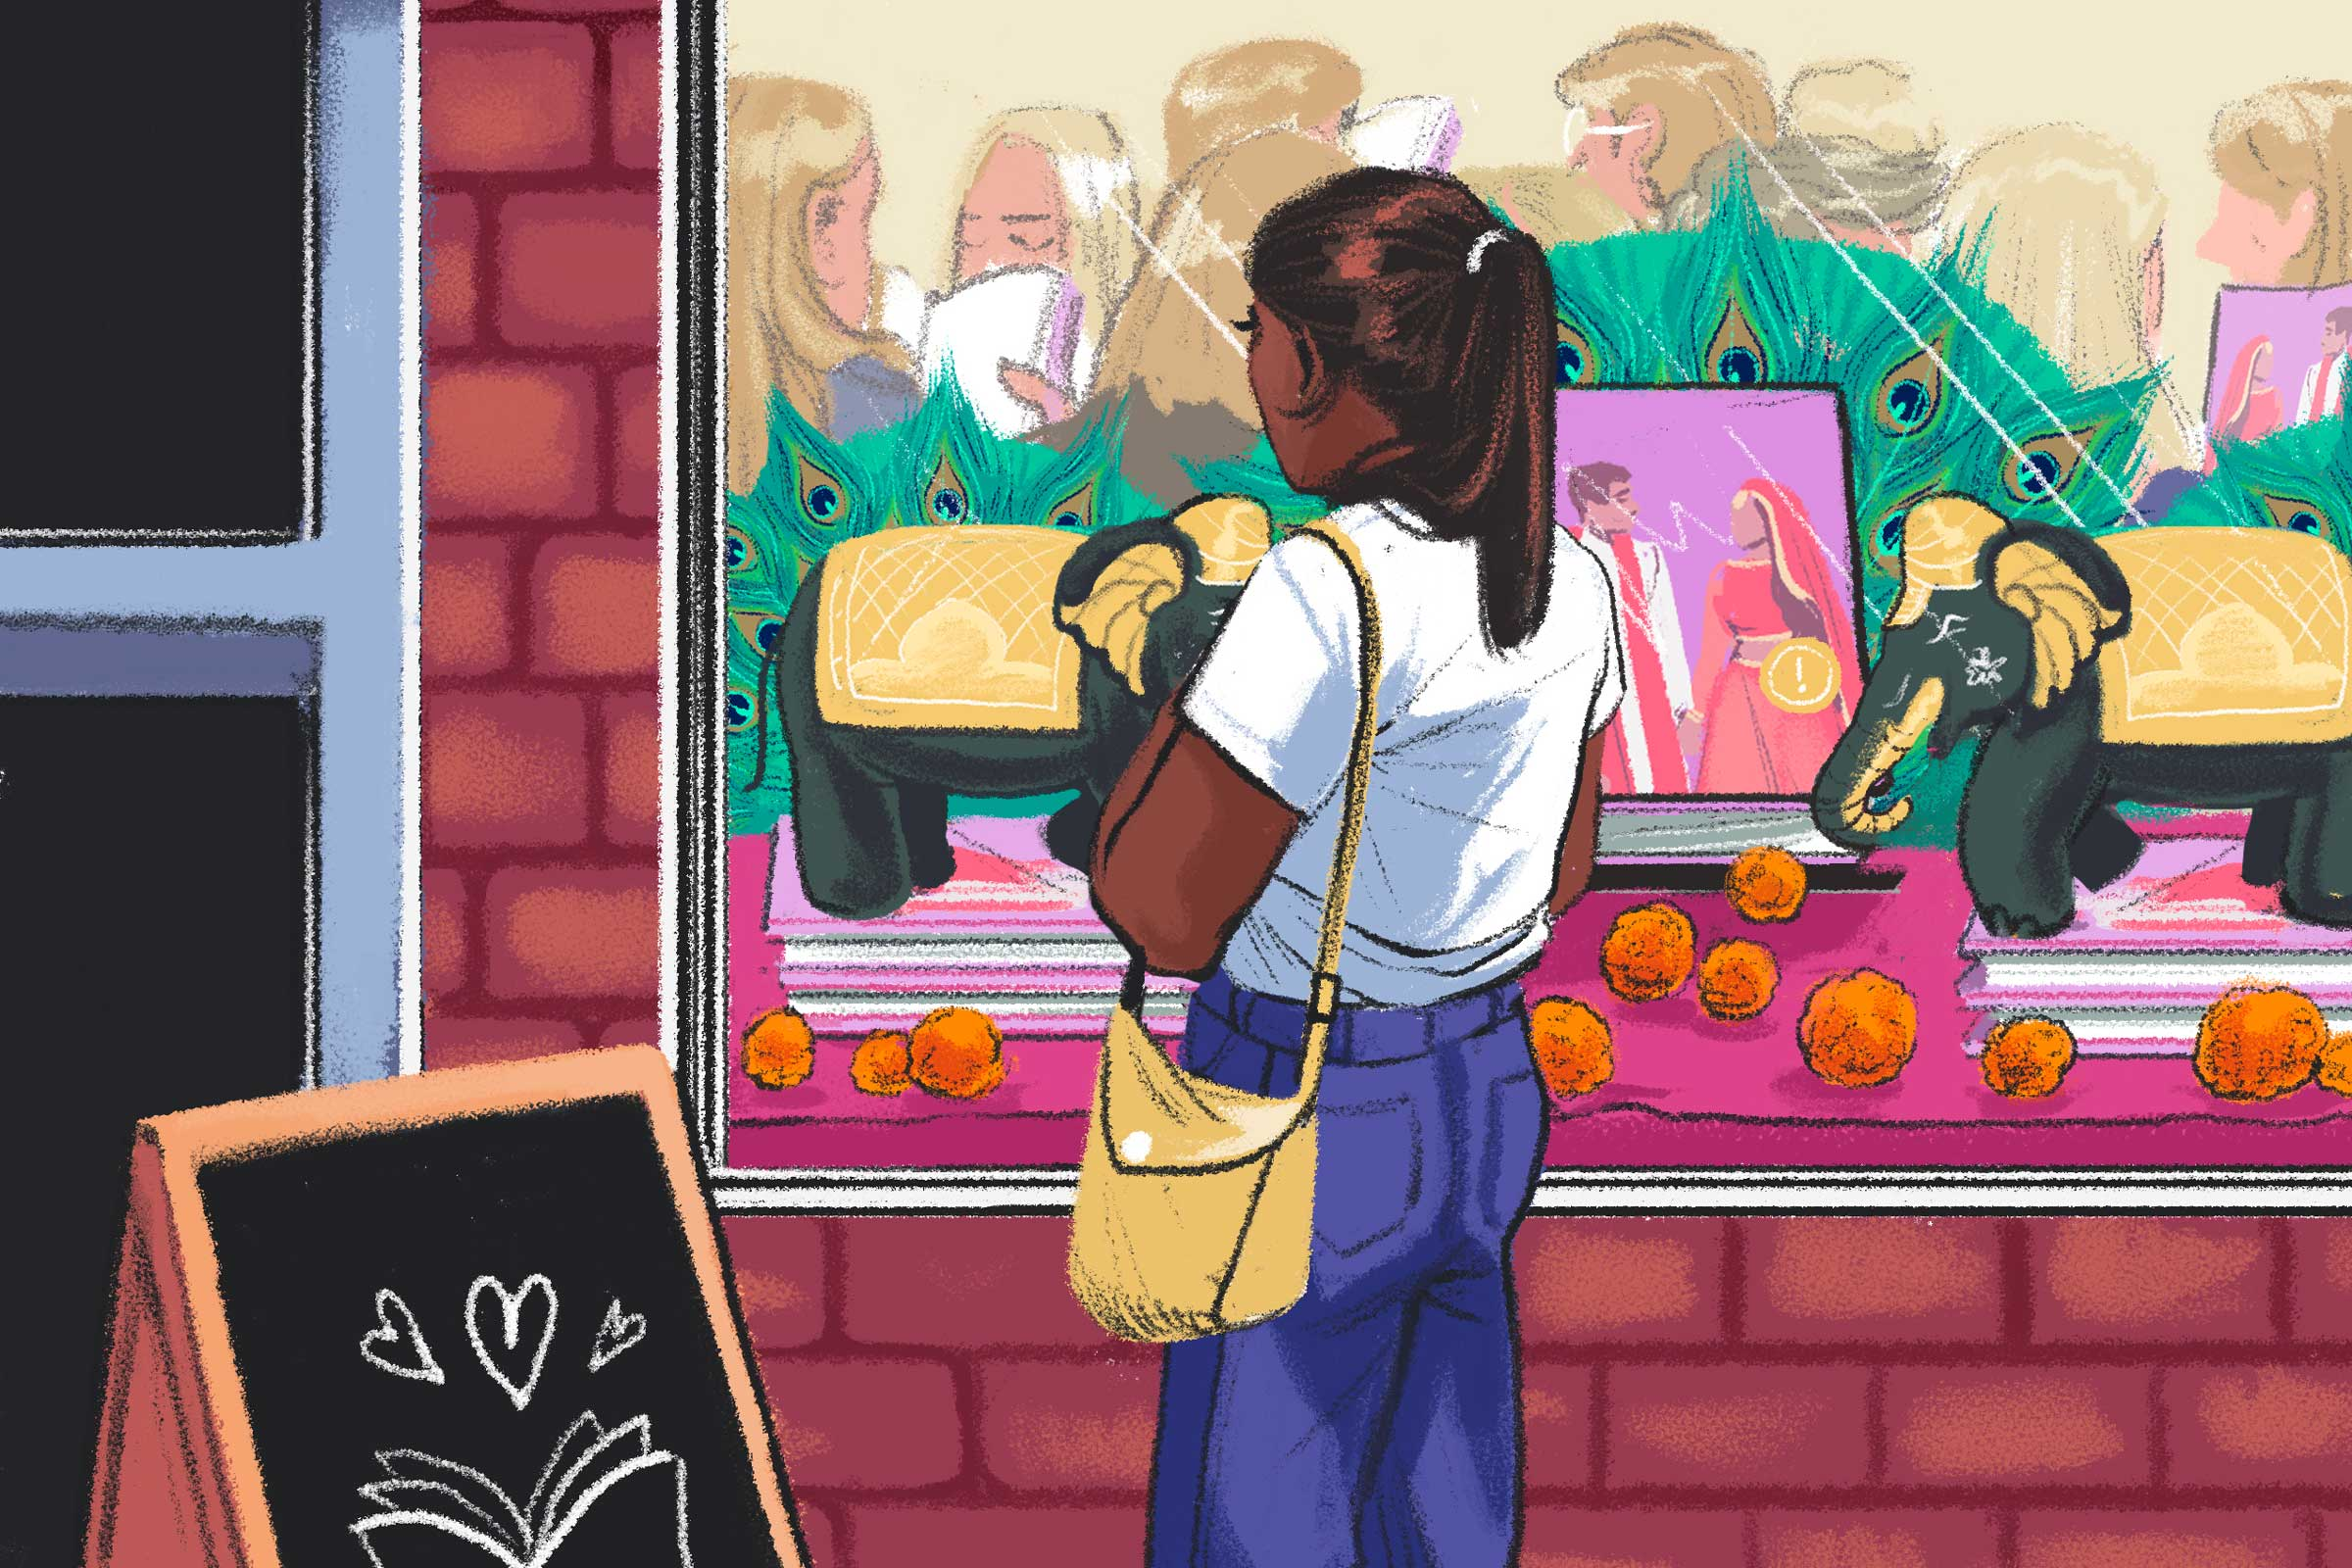 illustration of a South Asian woman outside of a bookstore observing a crowd of white people gathered inside for a South Asian romance novel event.